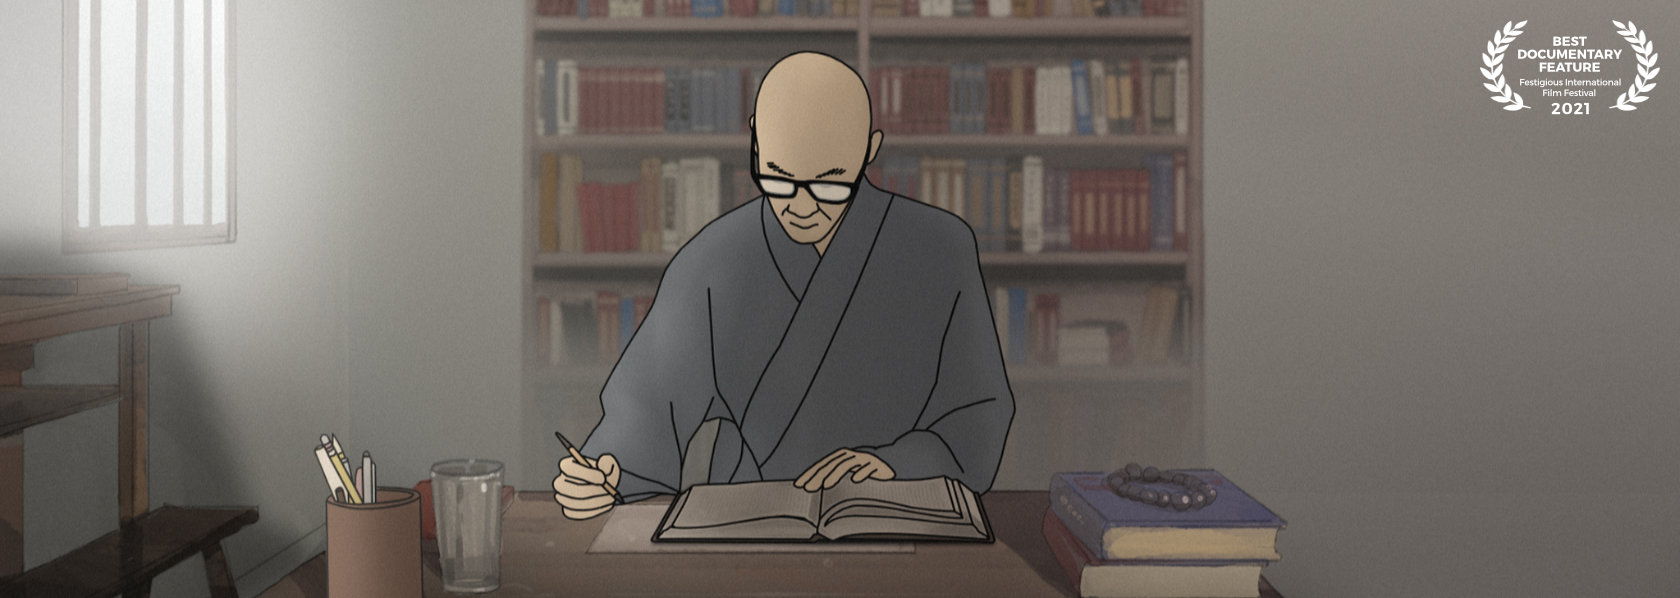 Master Sheng Yen writing on a book rendered in animation - Master Sheng Yen - THIS Buddhist Film Festival